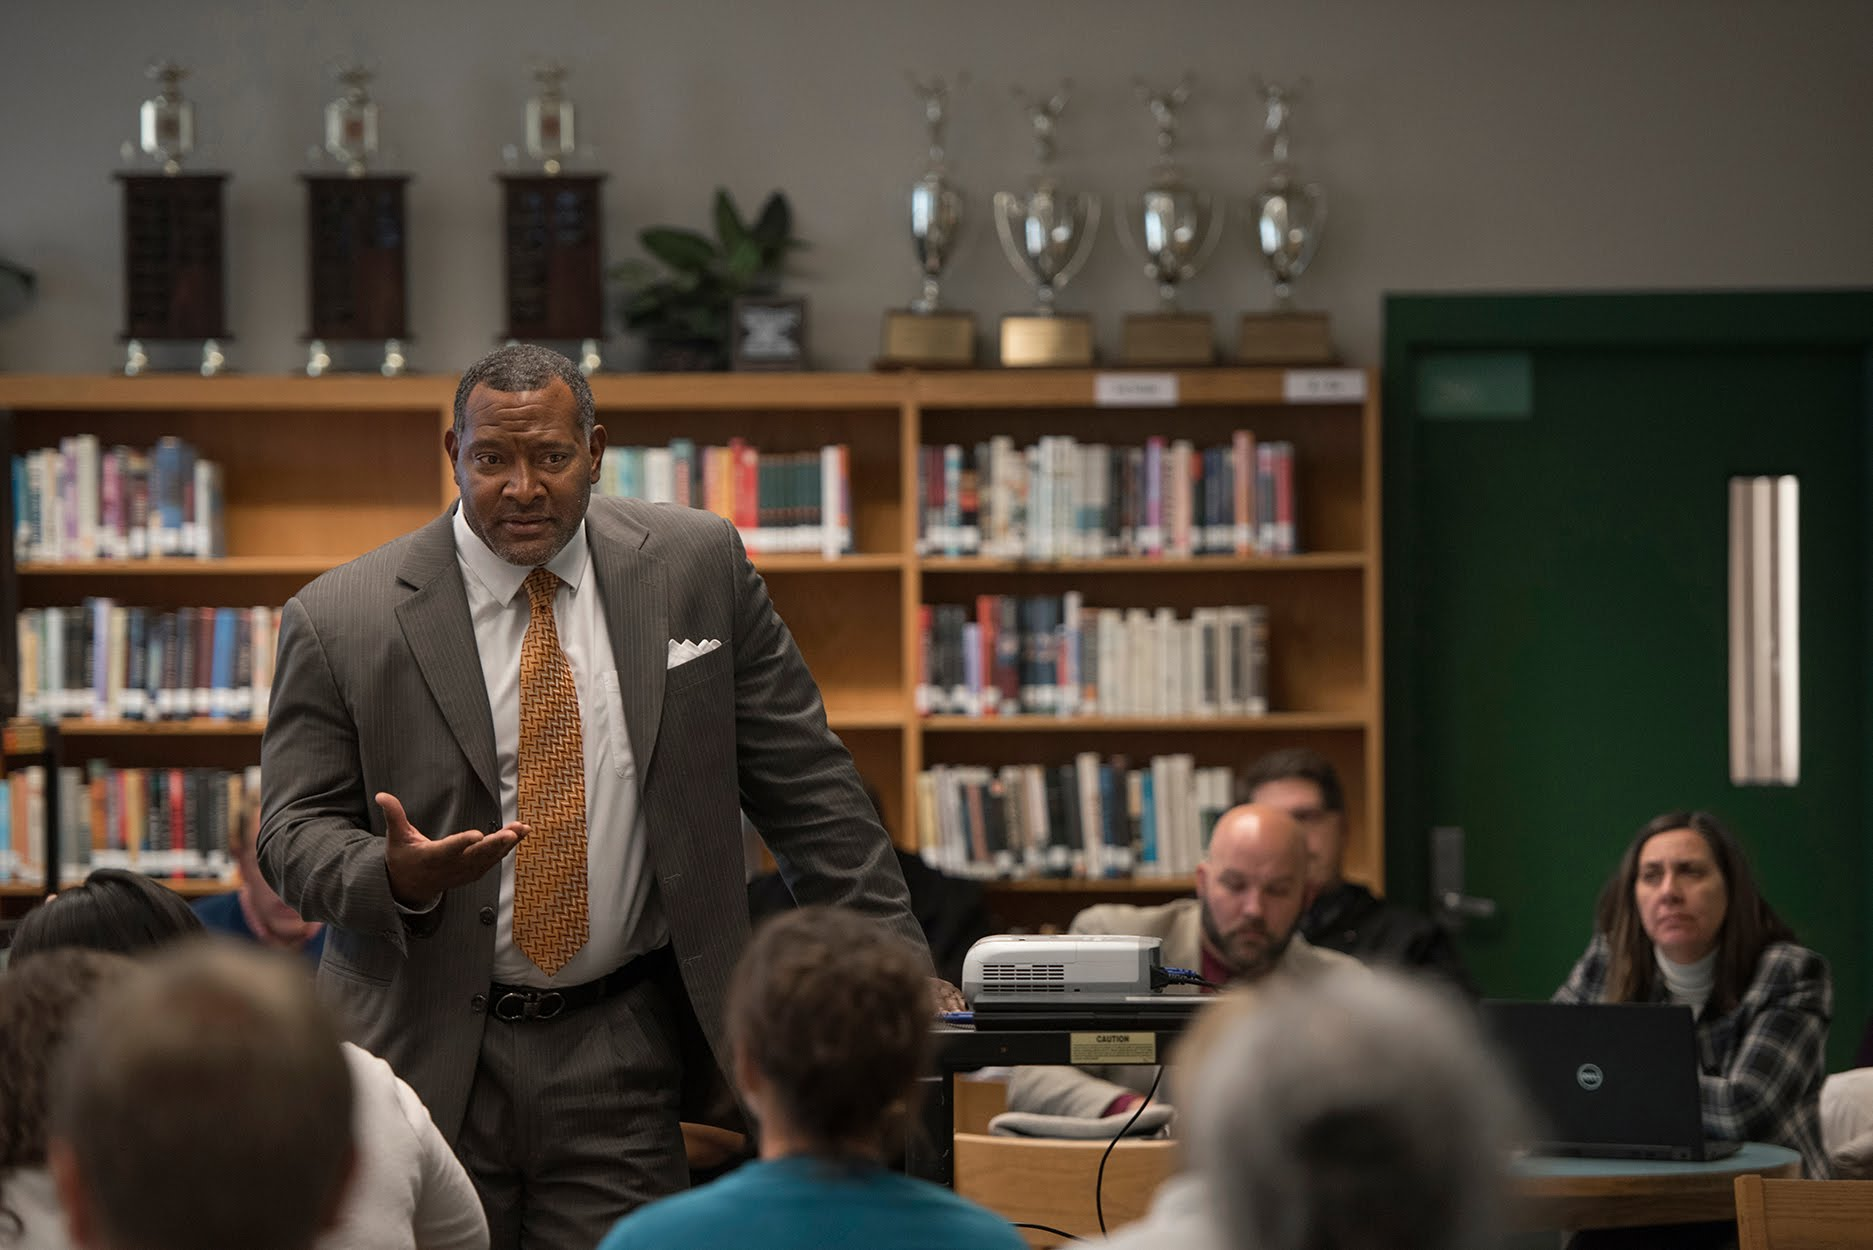 Superintendent Dr Anthony Hamlet pledges his support after listening to teachers at a teacher feedback session at Taylor Allderdice High School. (Photo by Martha Rial/PublicSource)